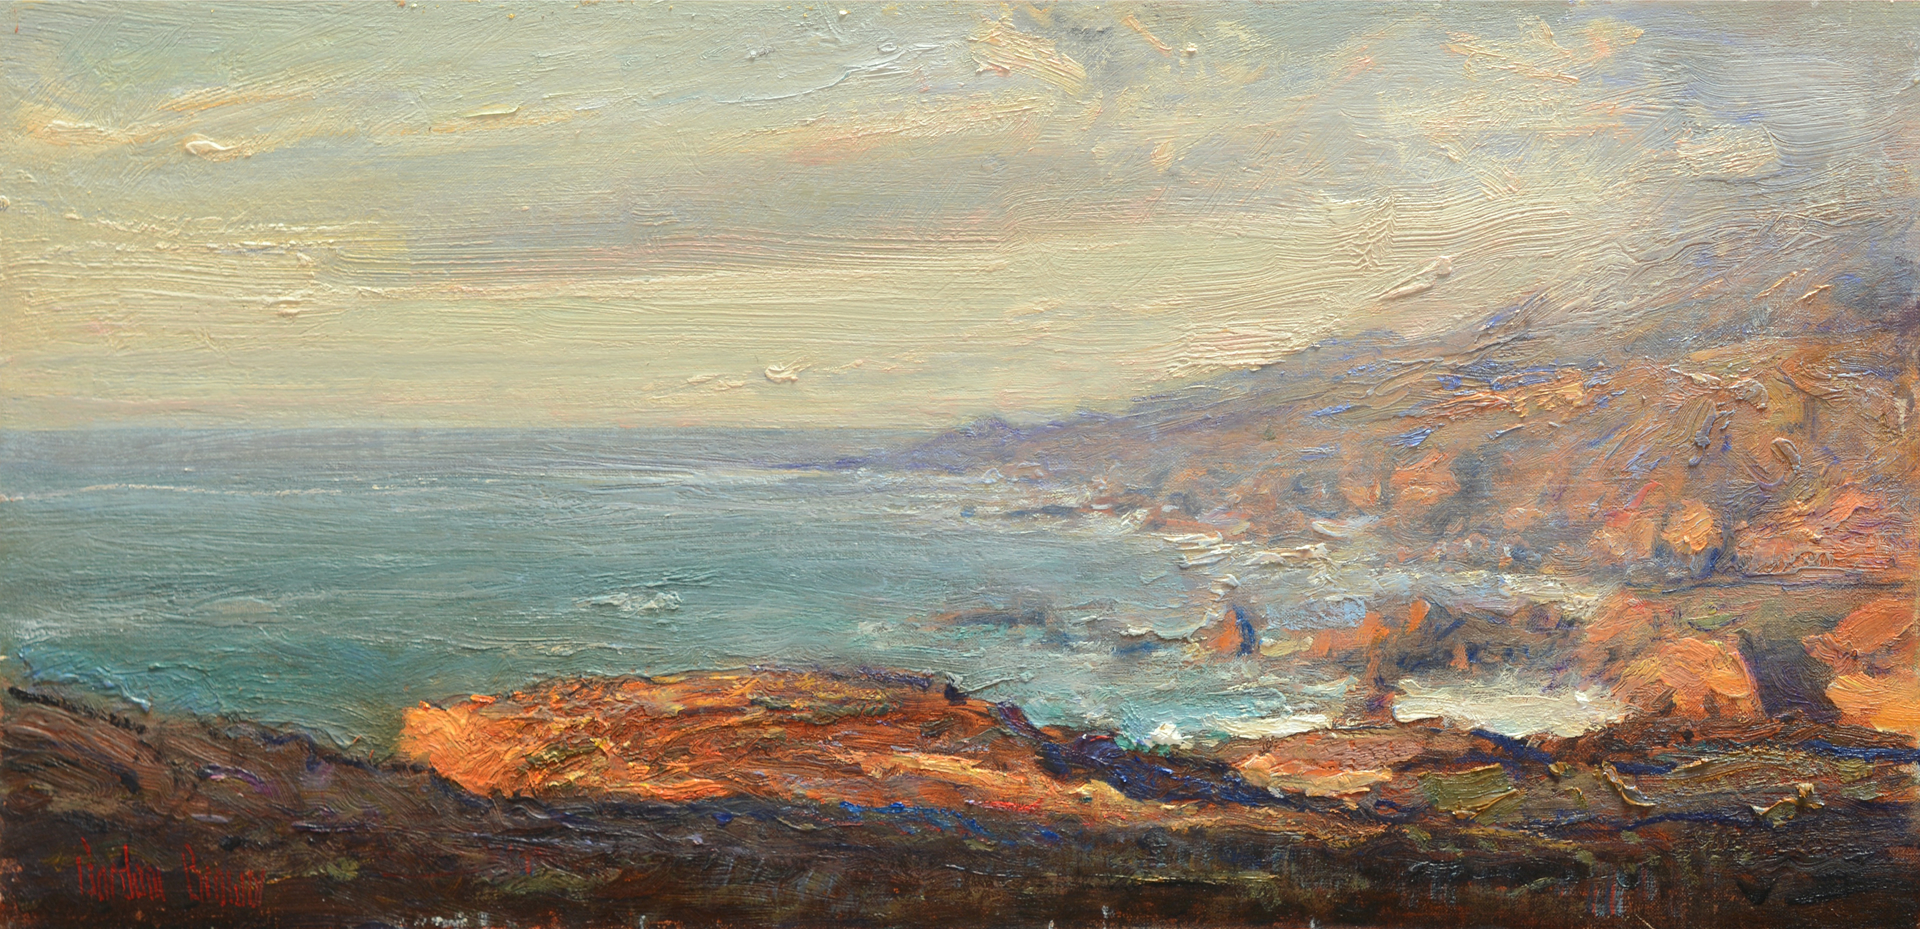 California Coastline by Gordon Brown